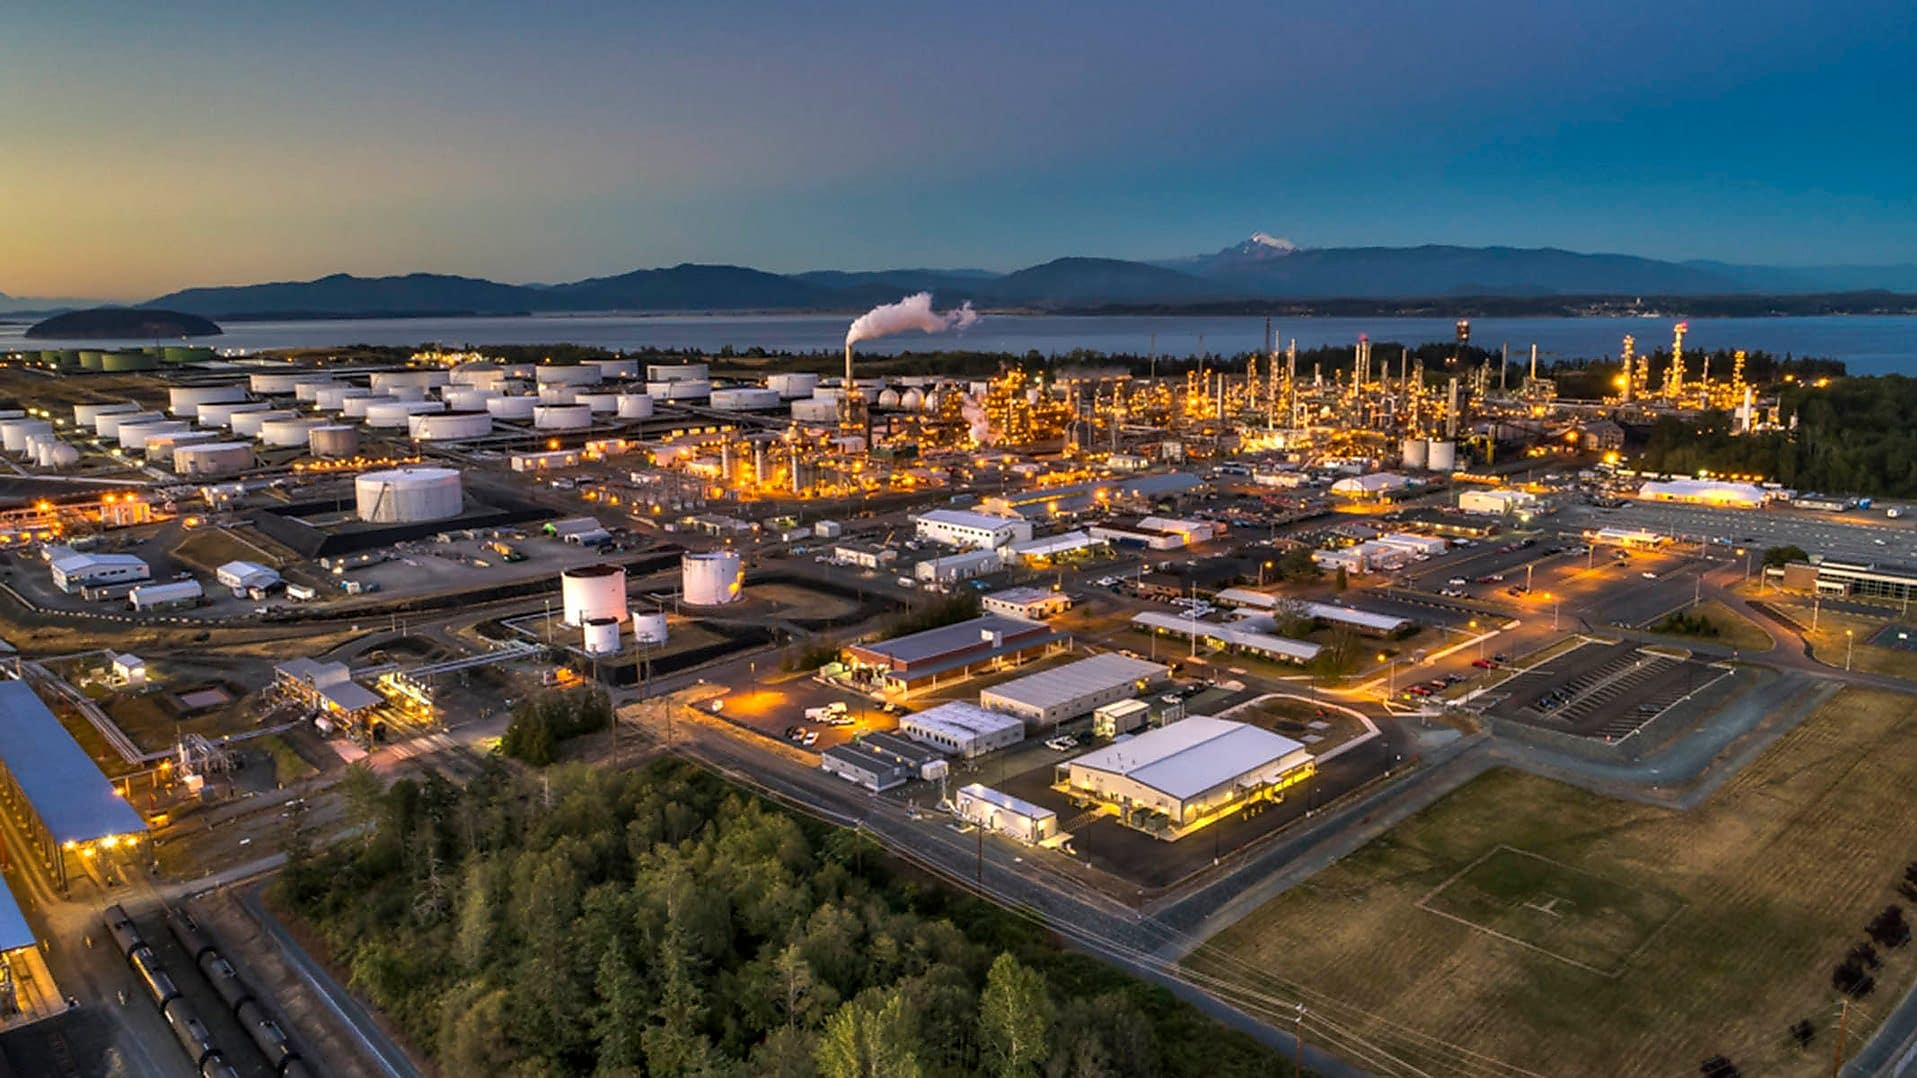 Puget Sound Refinery